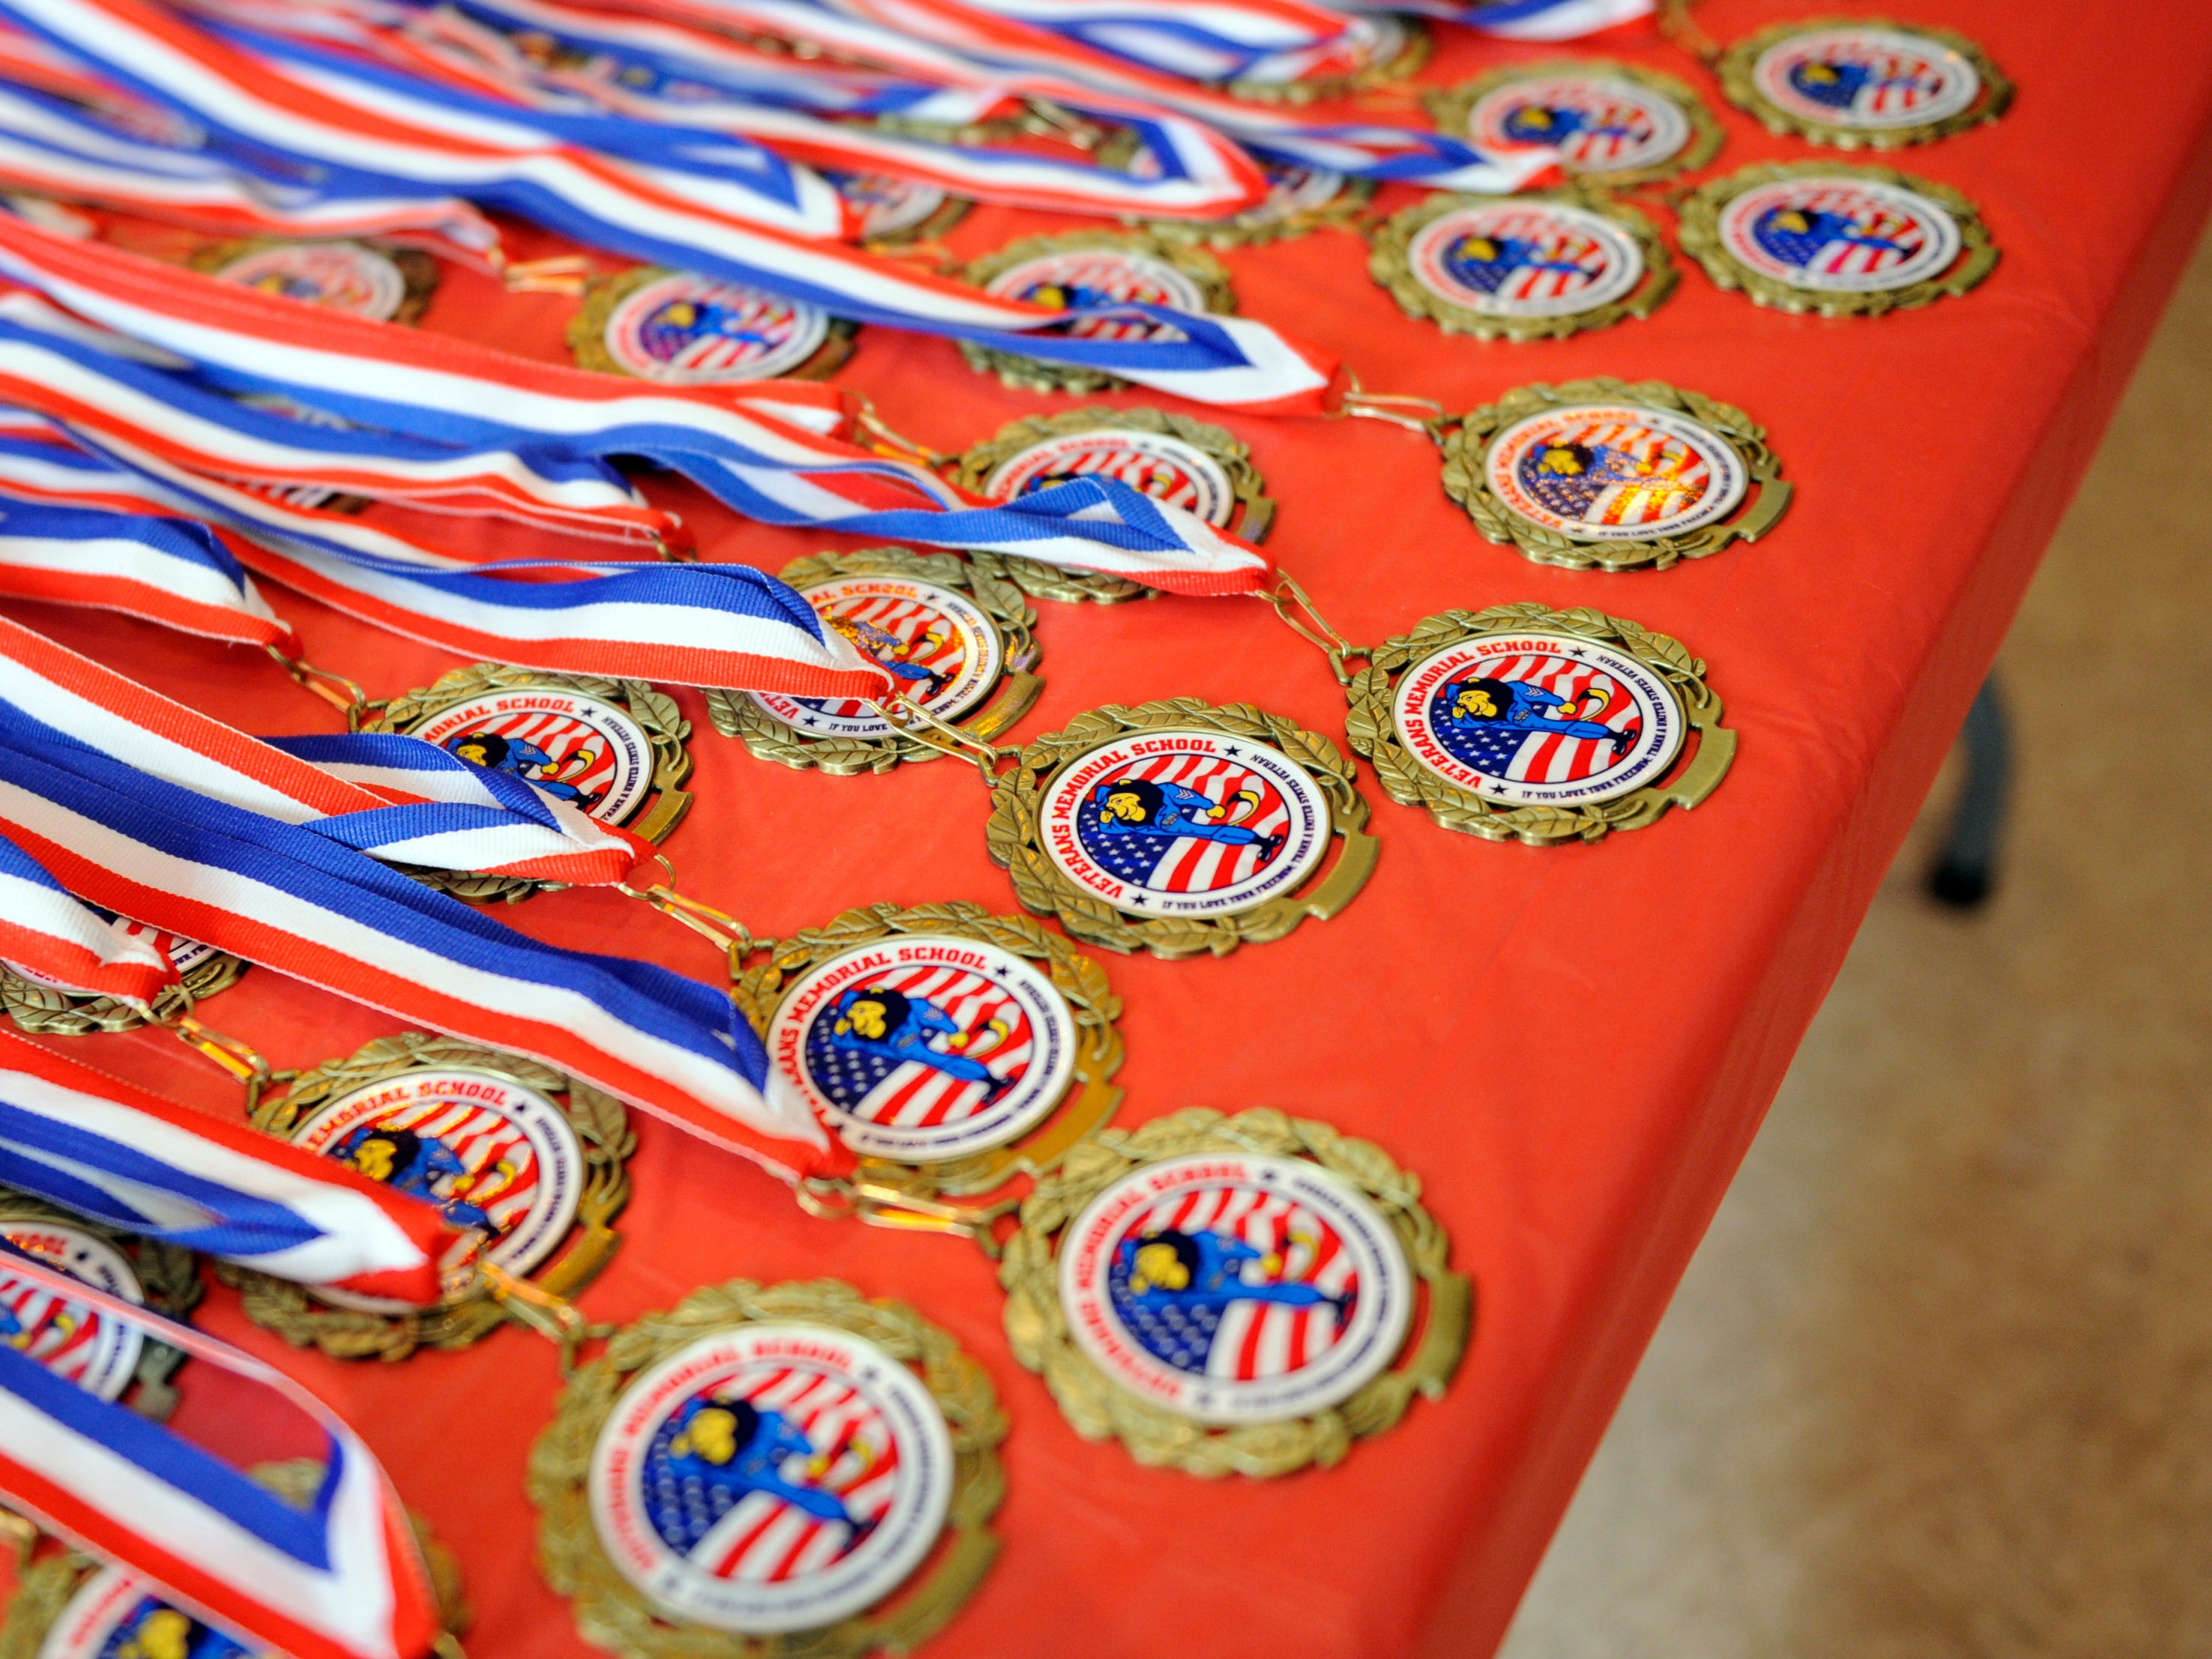 Veterans Memorial School medals were on display during a special assembly honoring heroes. Students awarded the medals to each veteran that attended the event on Wednesday, November 14, 2018.